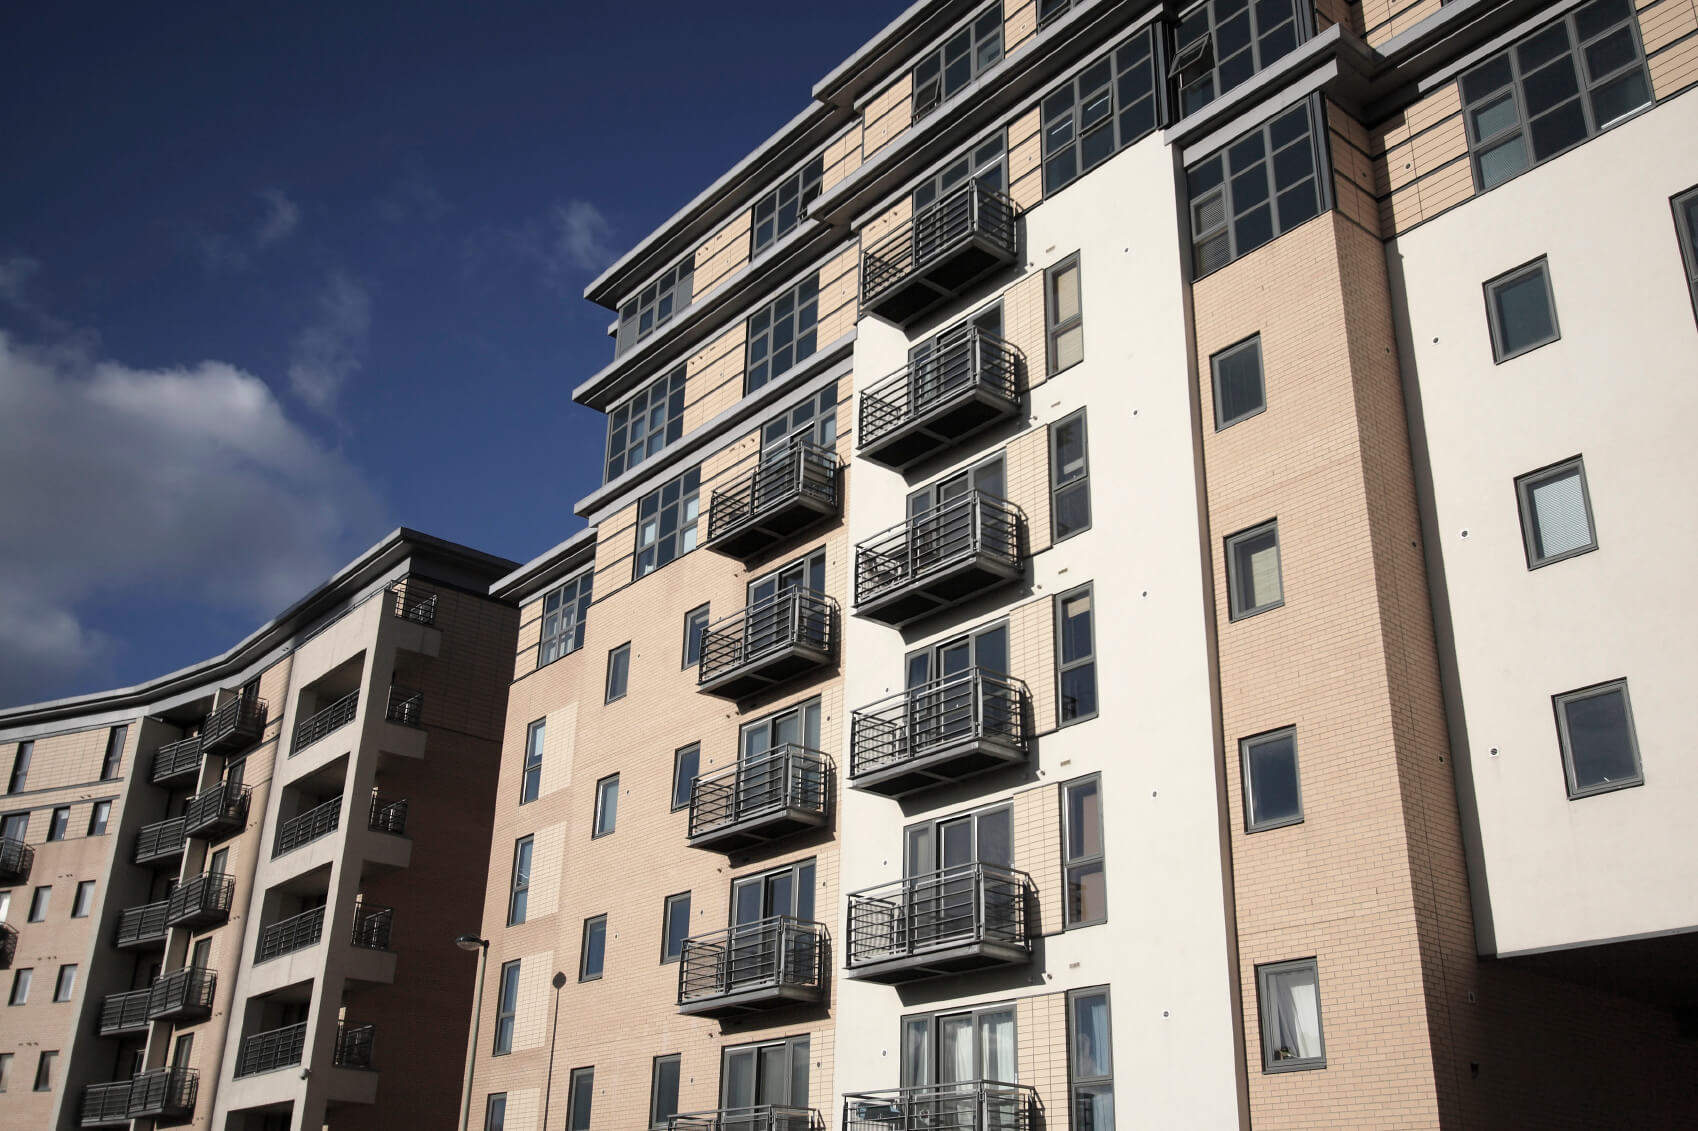 Winckworth Sherwood acts for Affinity Sutton on social housing sector's largest merger